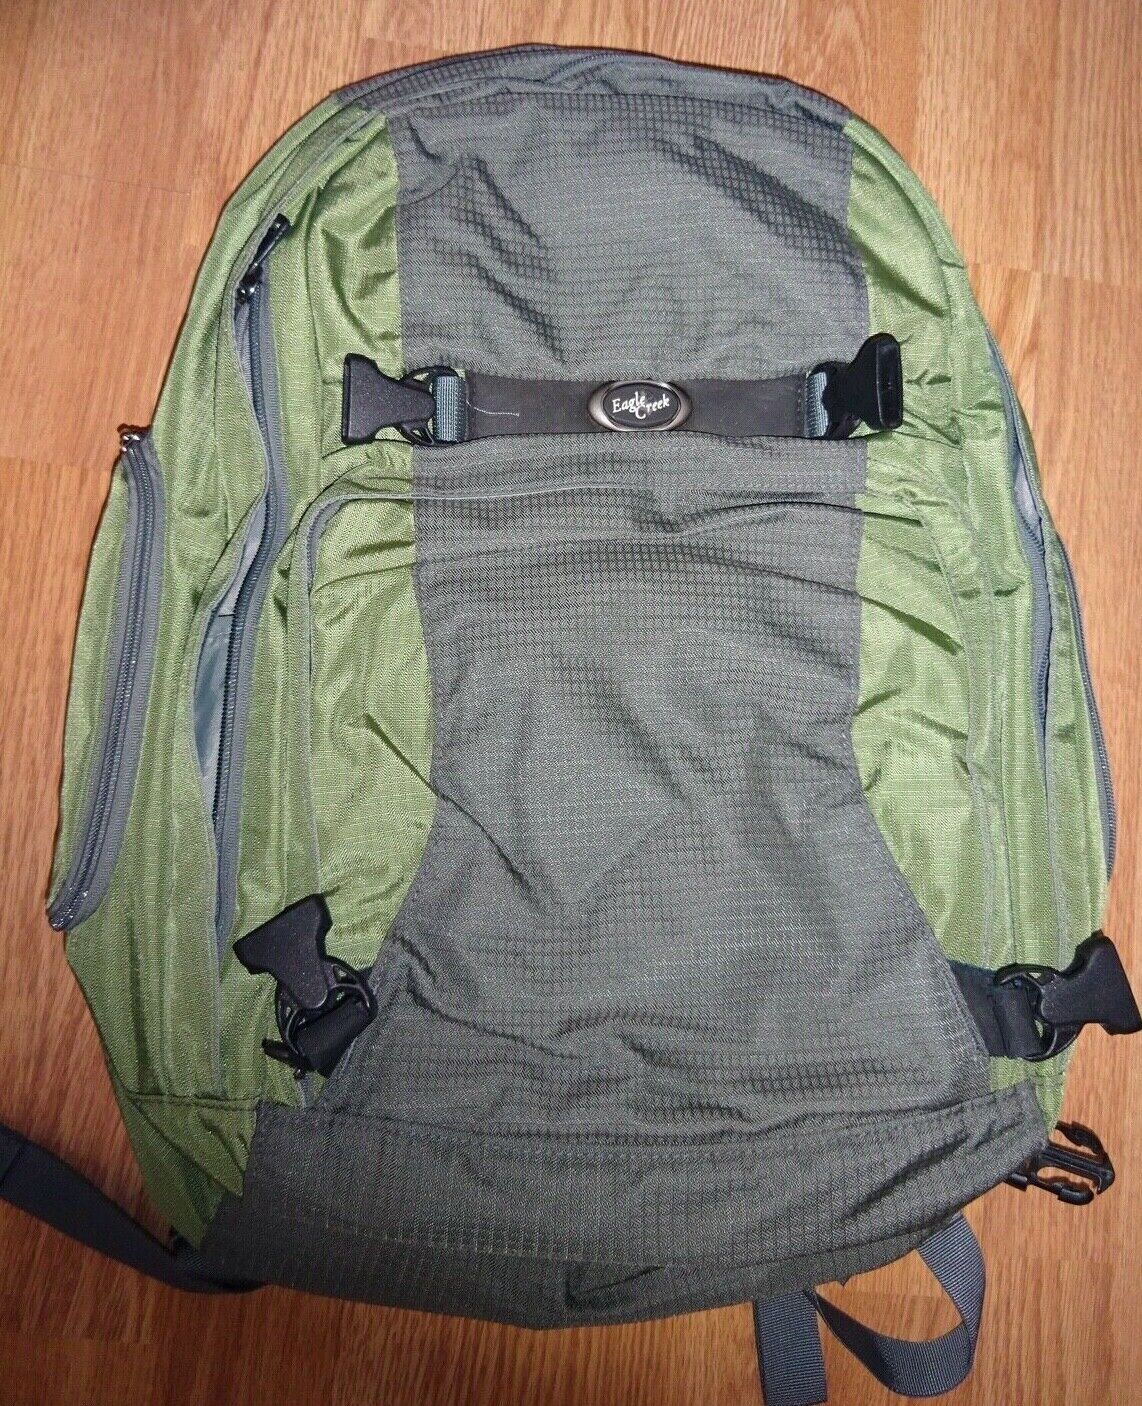 Eagle Creek Green And Gray Replacement Detachable Day Pack Backpack Hiking 20x15 - $49.00